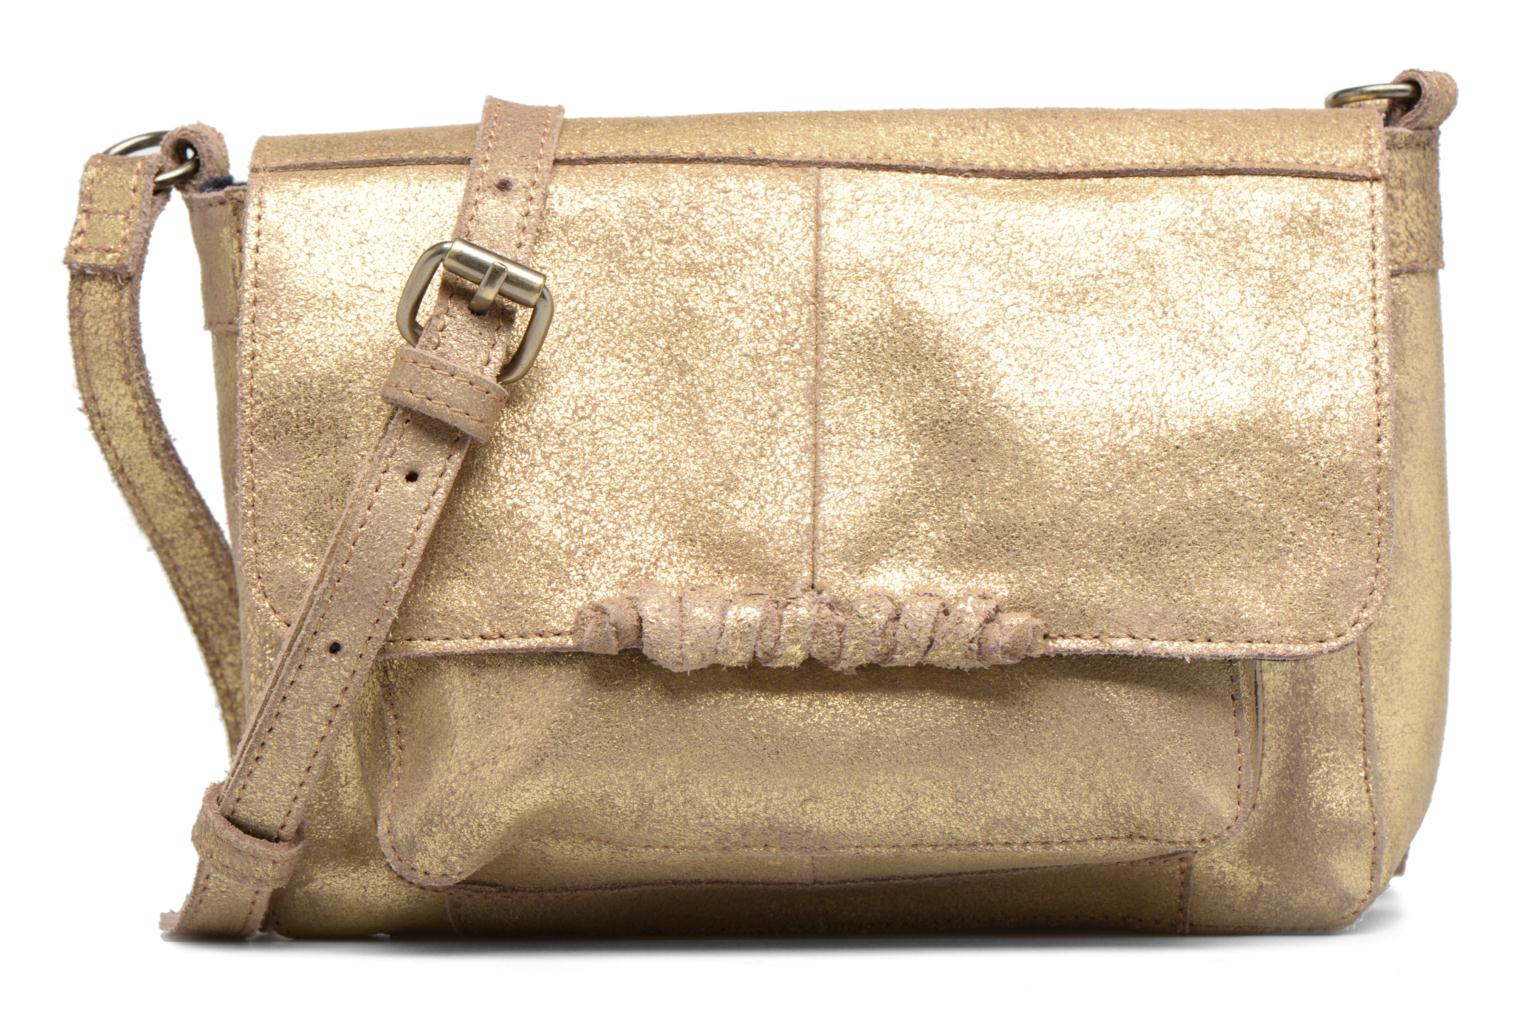 Handtassen Pieces Musta Leather Crossover bag Goud en brons detail